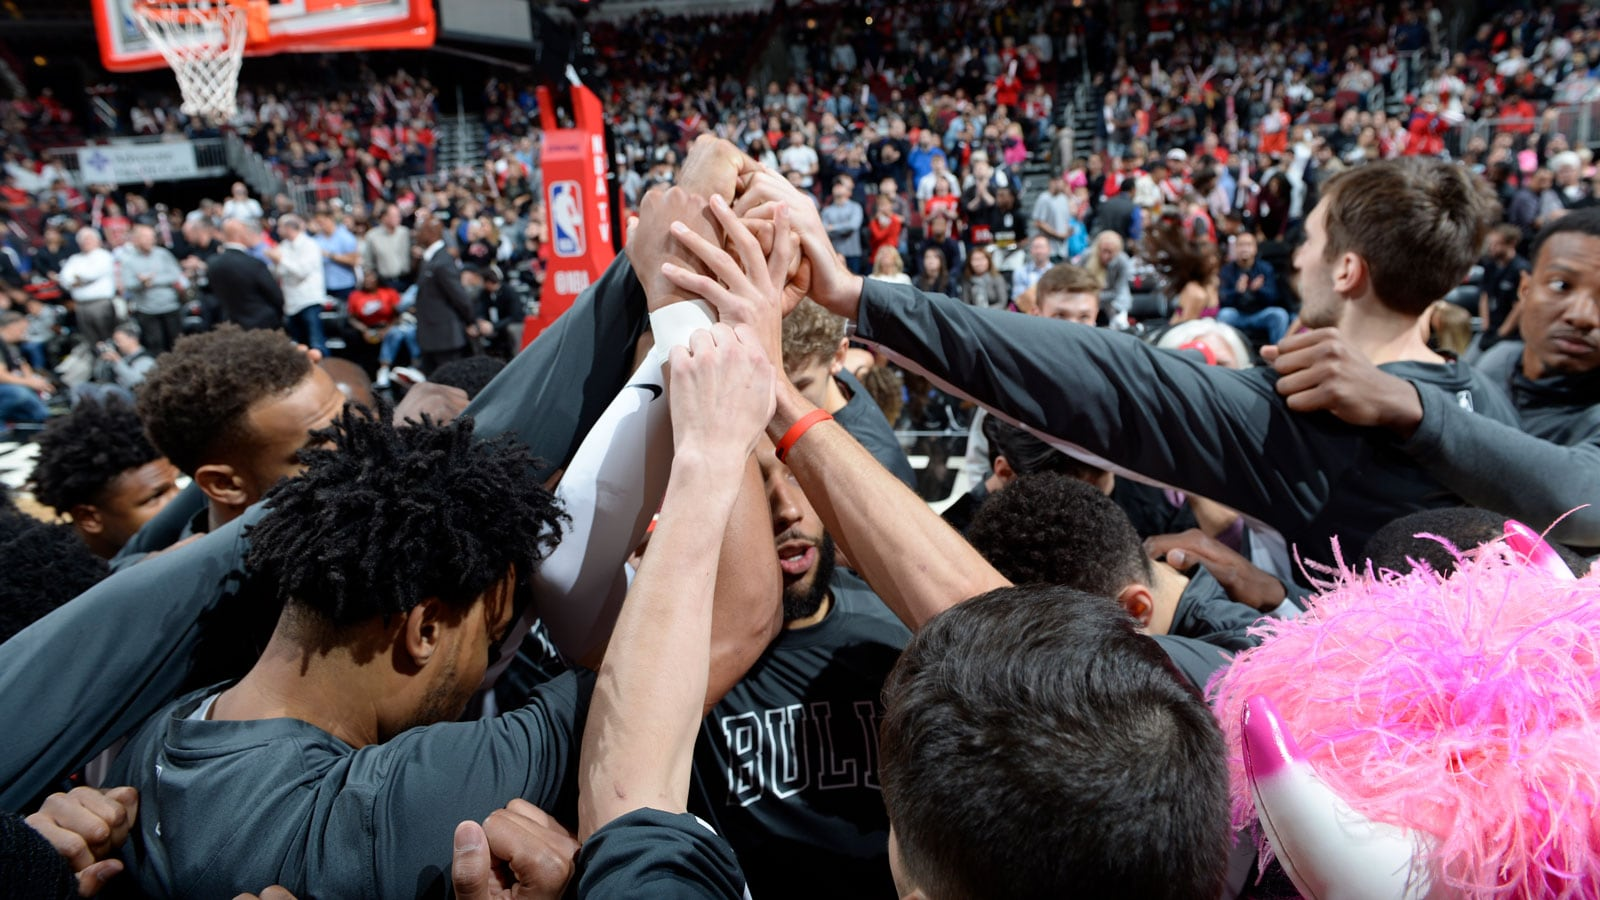 The Chicago Bulls huddle pregame against the Pelicans